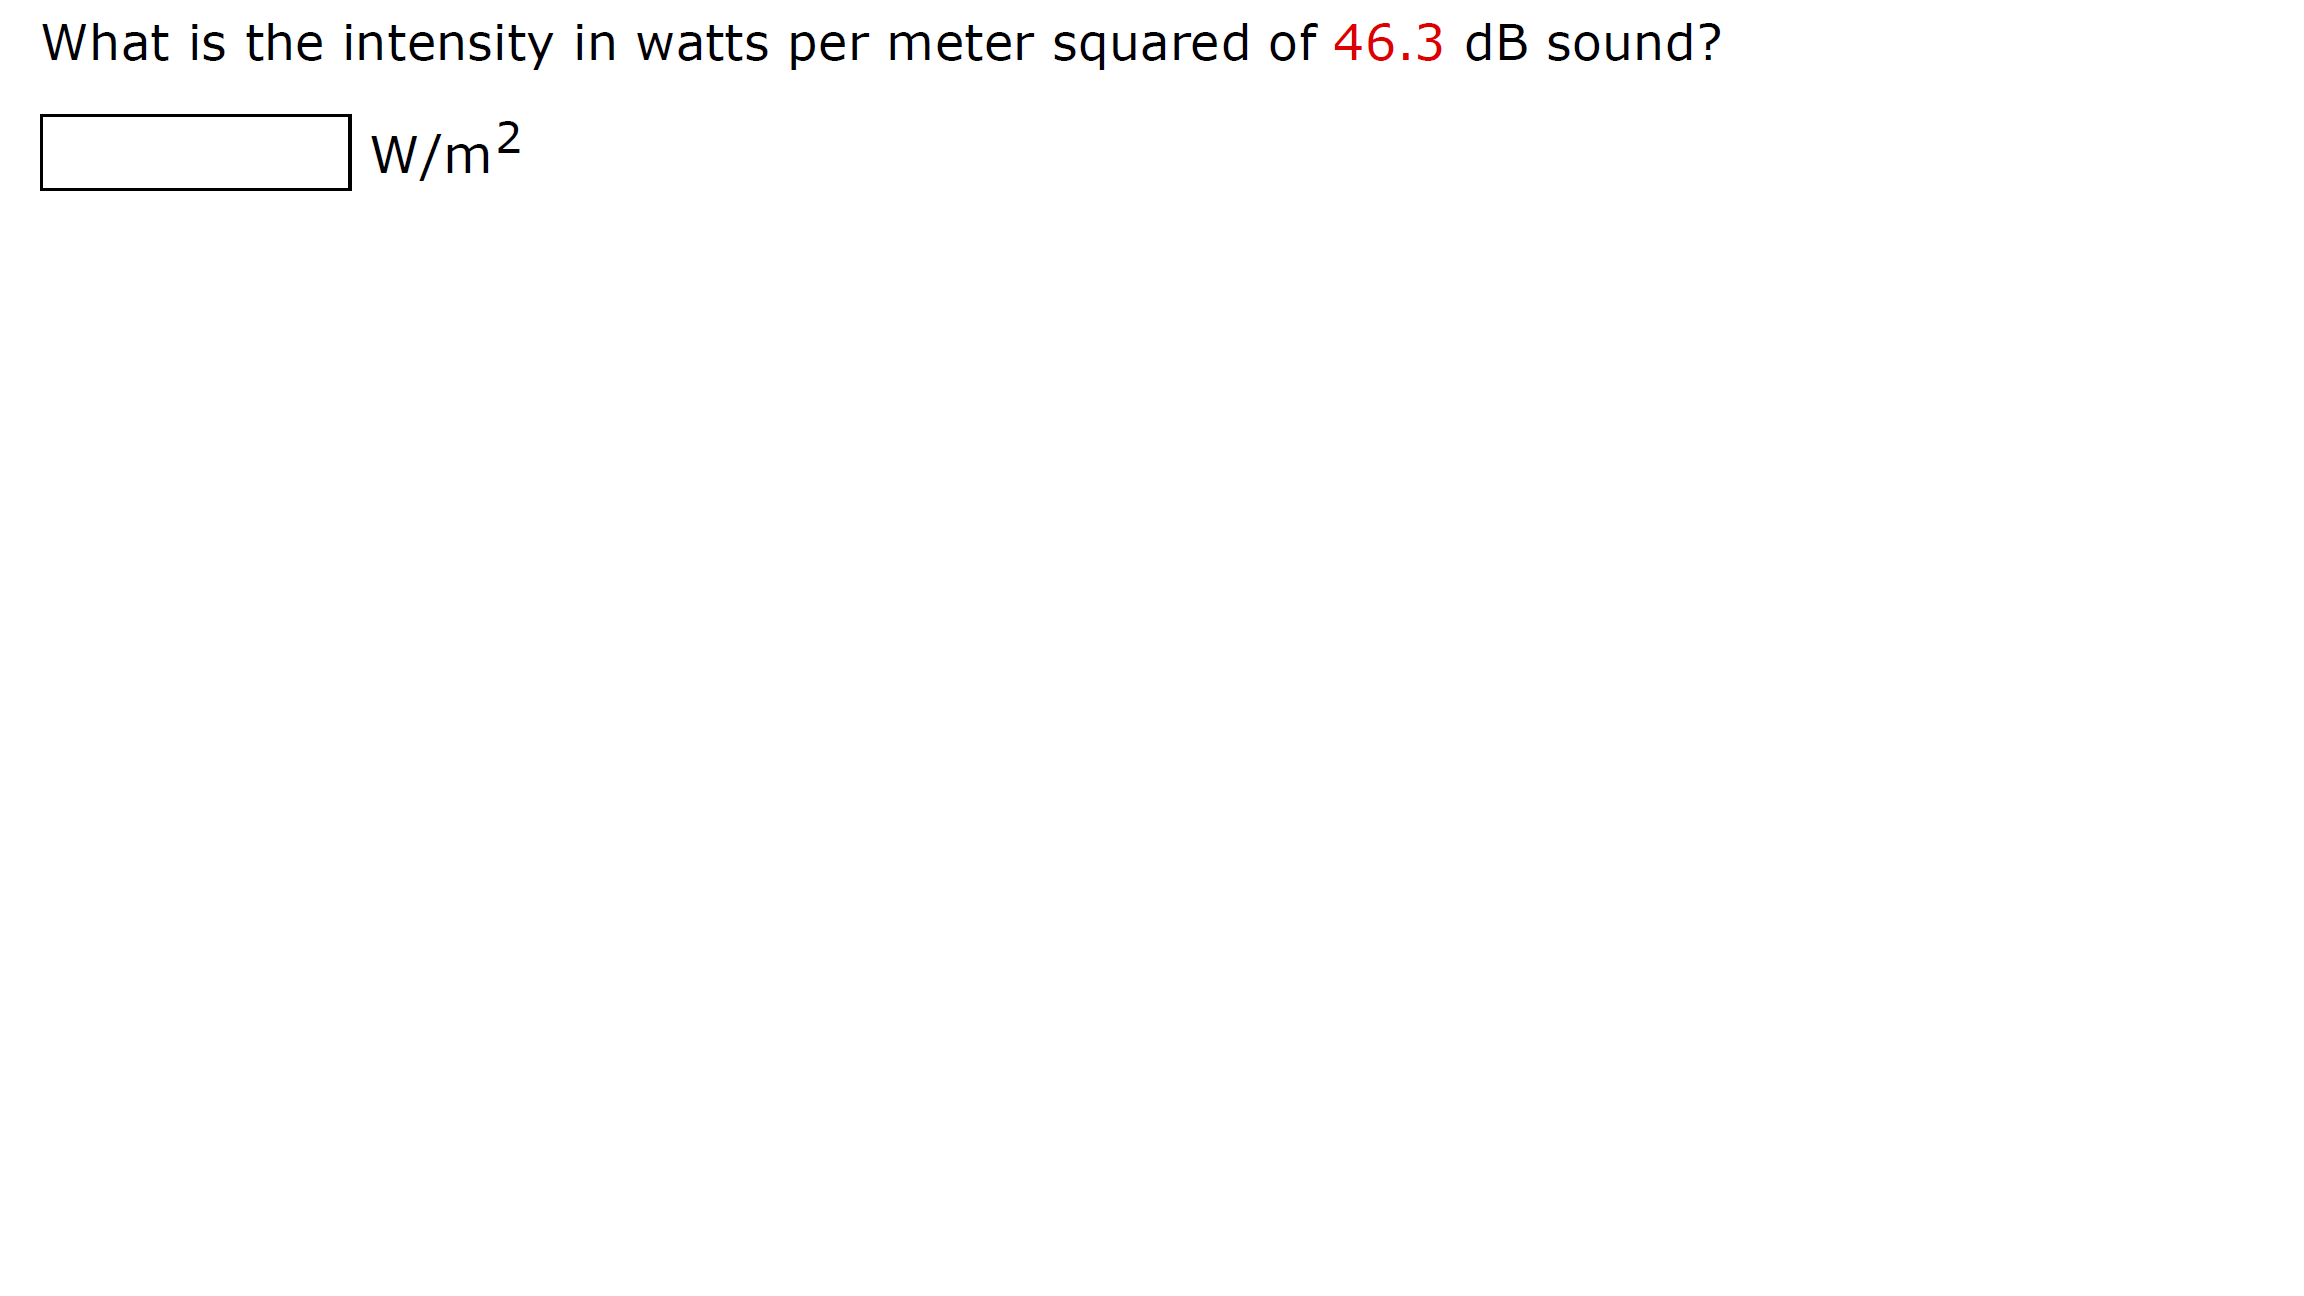 What is the intensity in watts per meter squared of 46.3 dB sound?